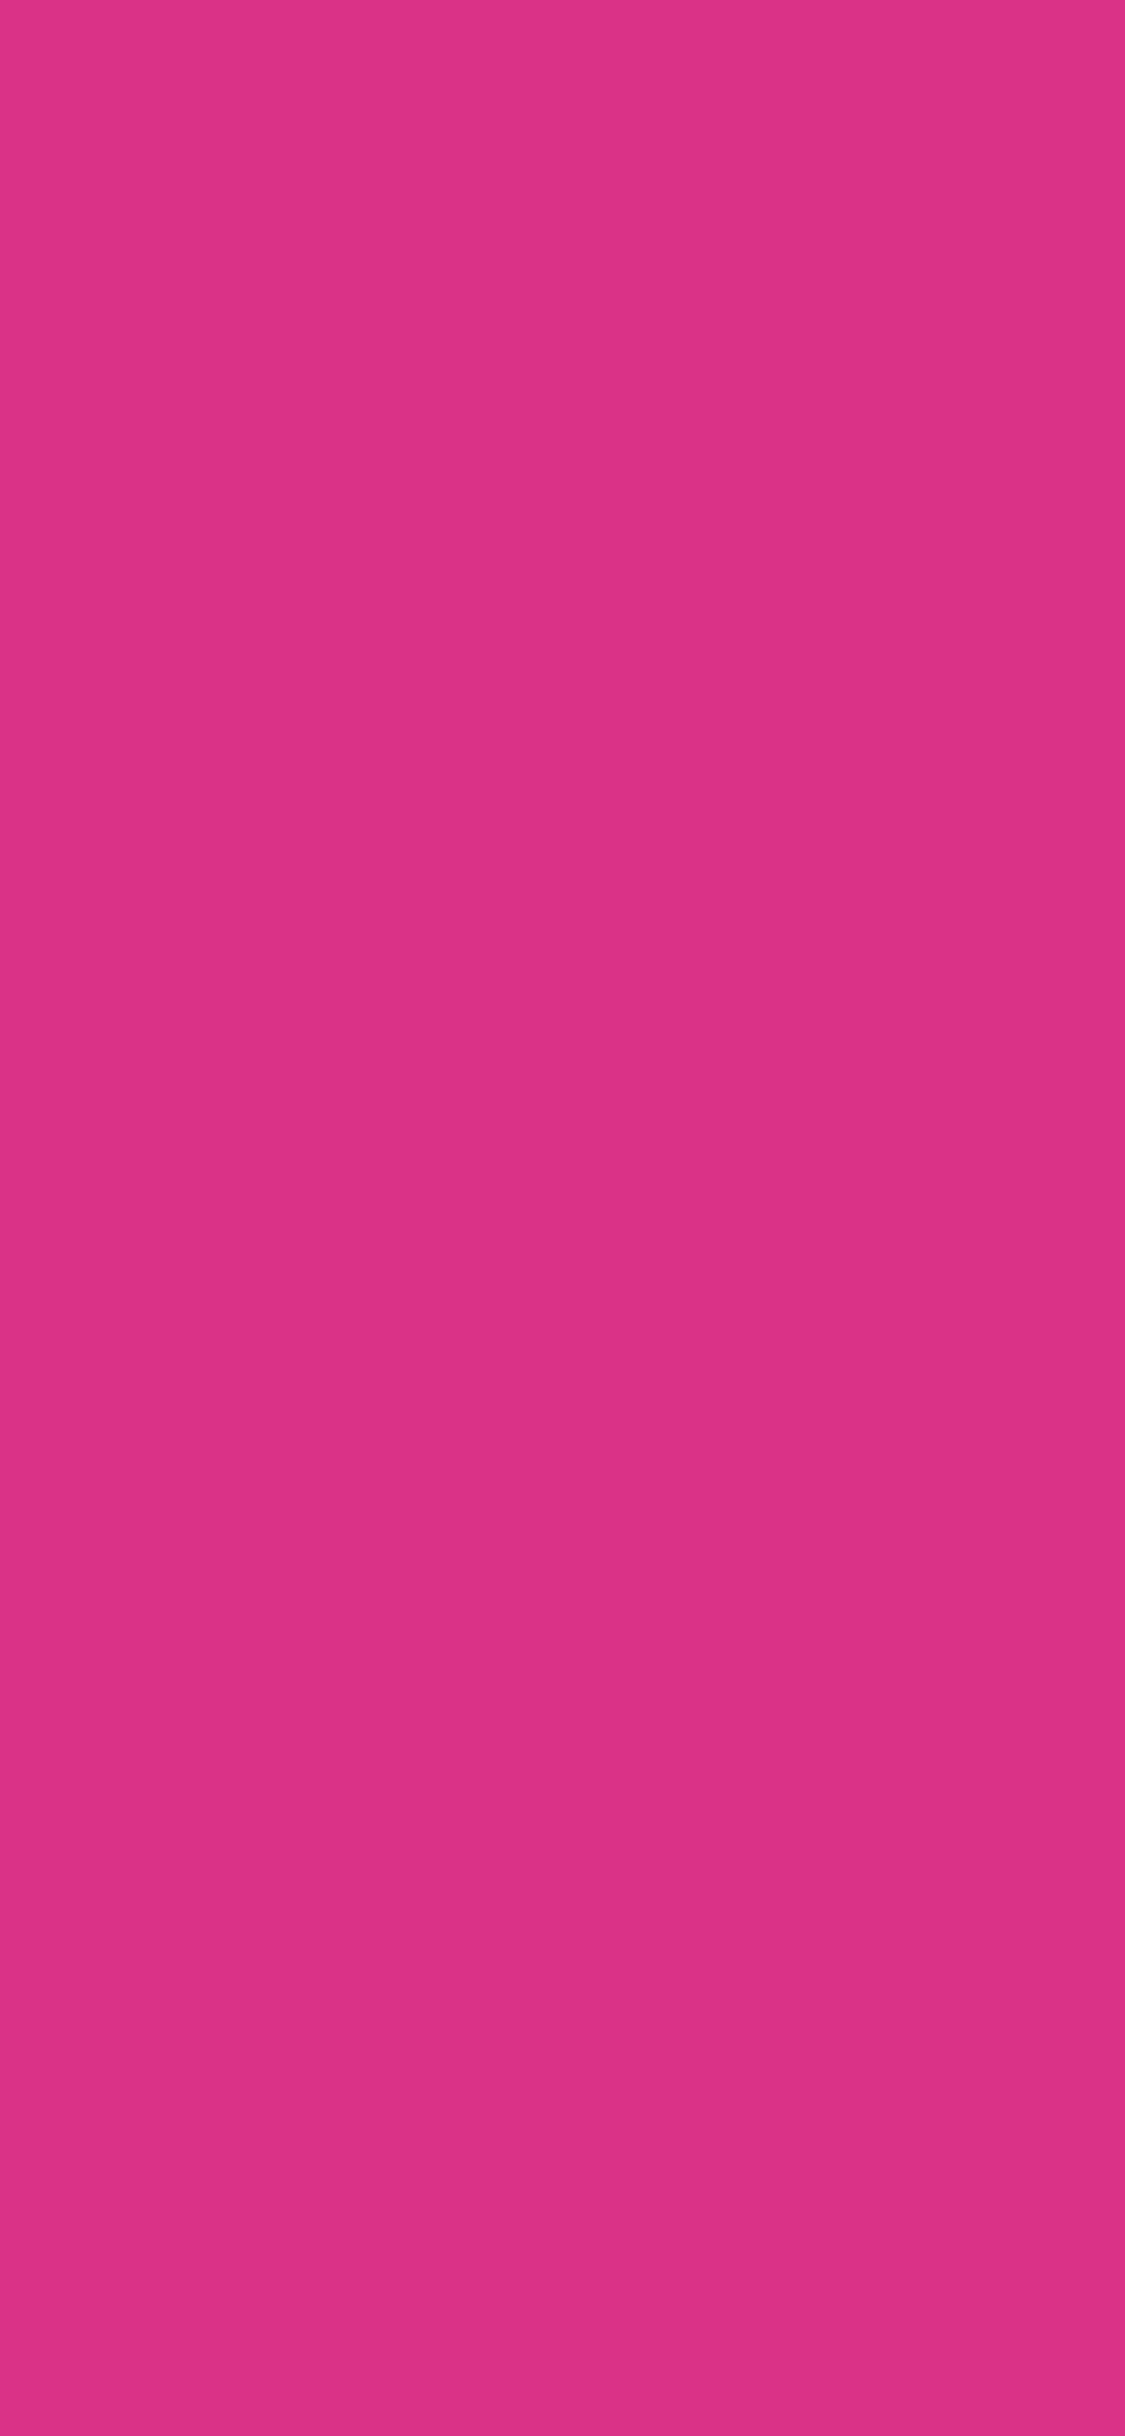 1125x2436 Deep Cerise Solid Color Background